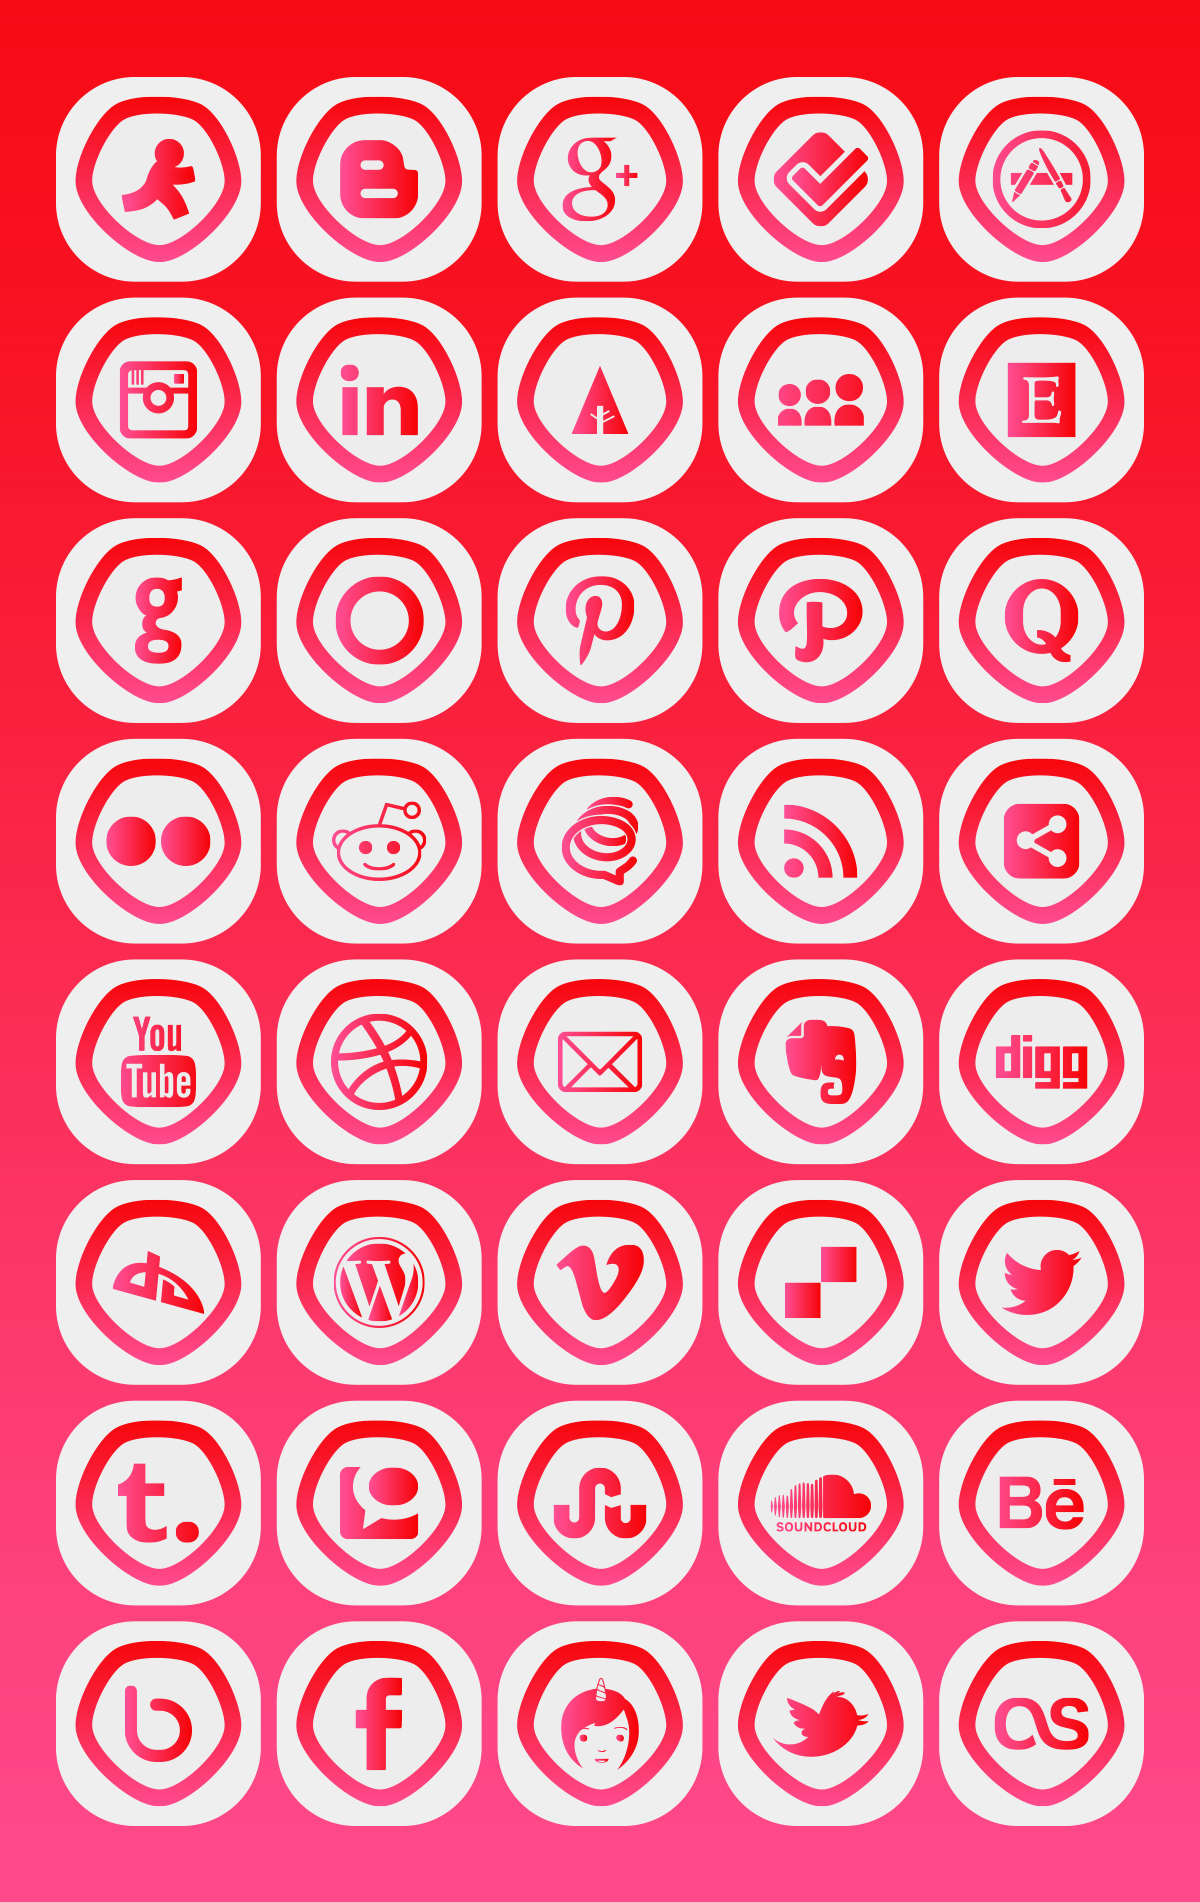 bubbly-social-media-icons